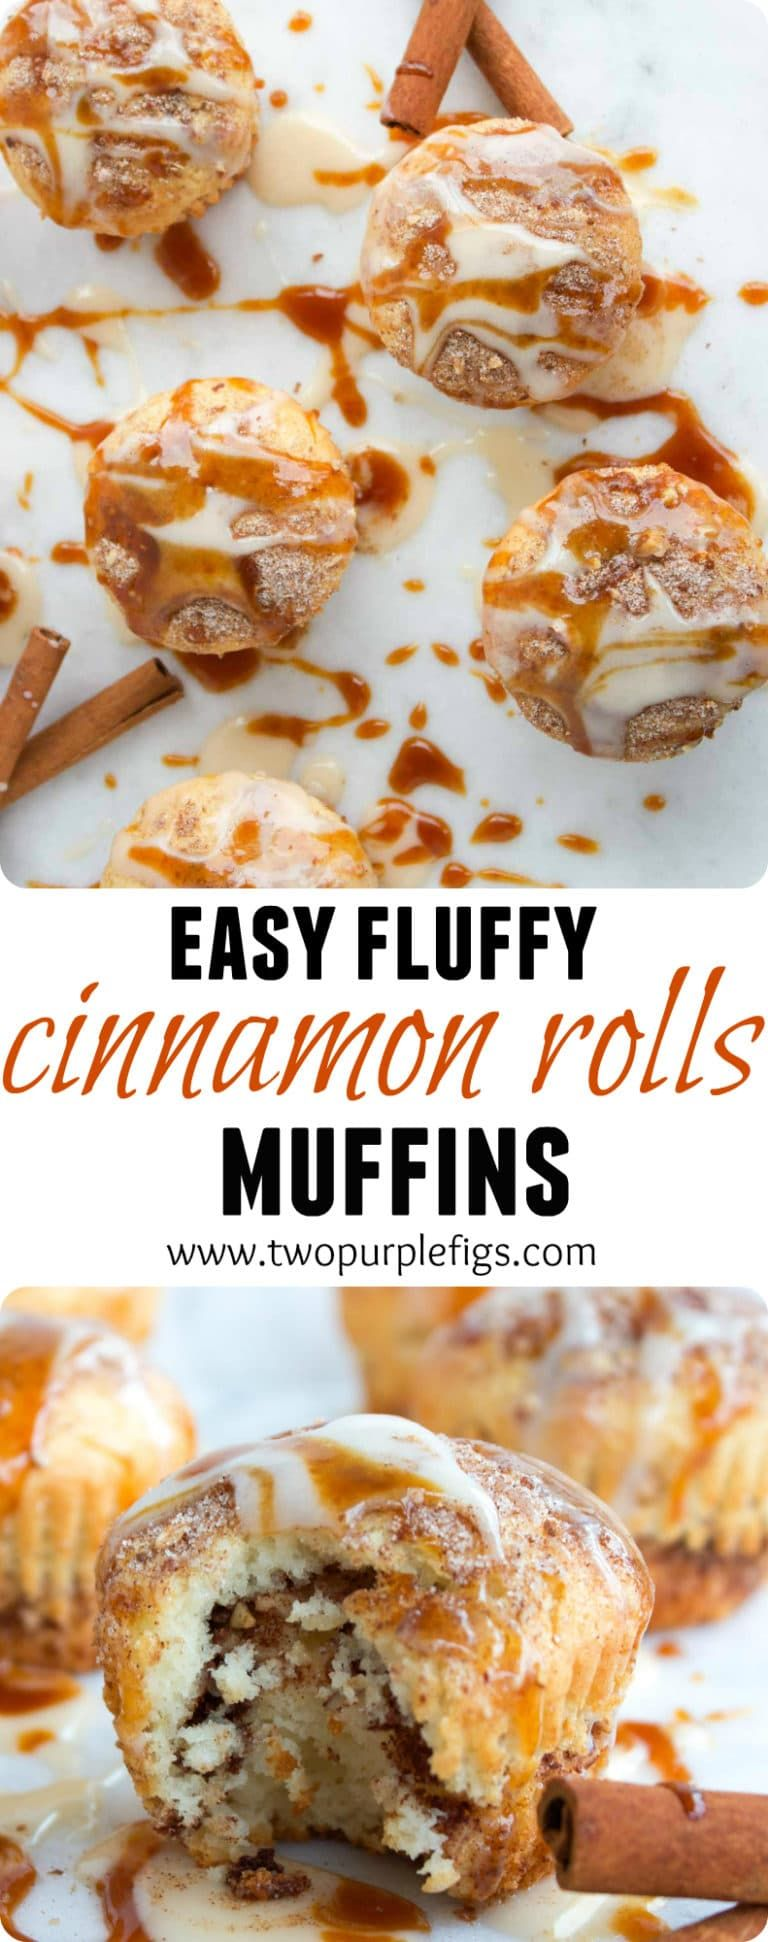 These easy cinnamon rolls muffins have all the flavors you crave from a cinnamon roll and the tenderness and convenience of baking a muffin! The perfect sweet treat, ideal for breakfast, brunch, or dessert!